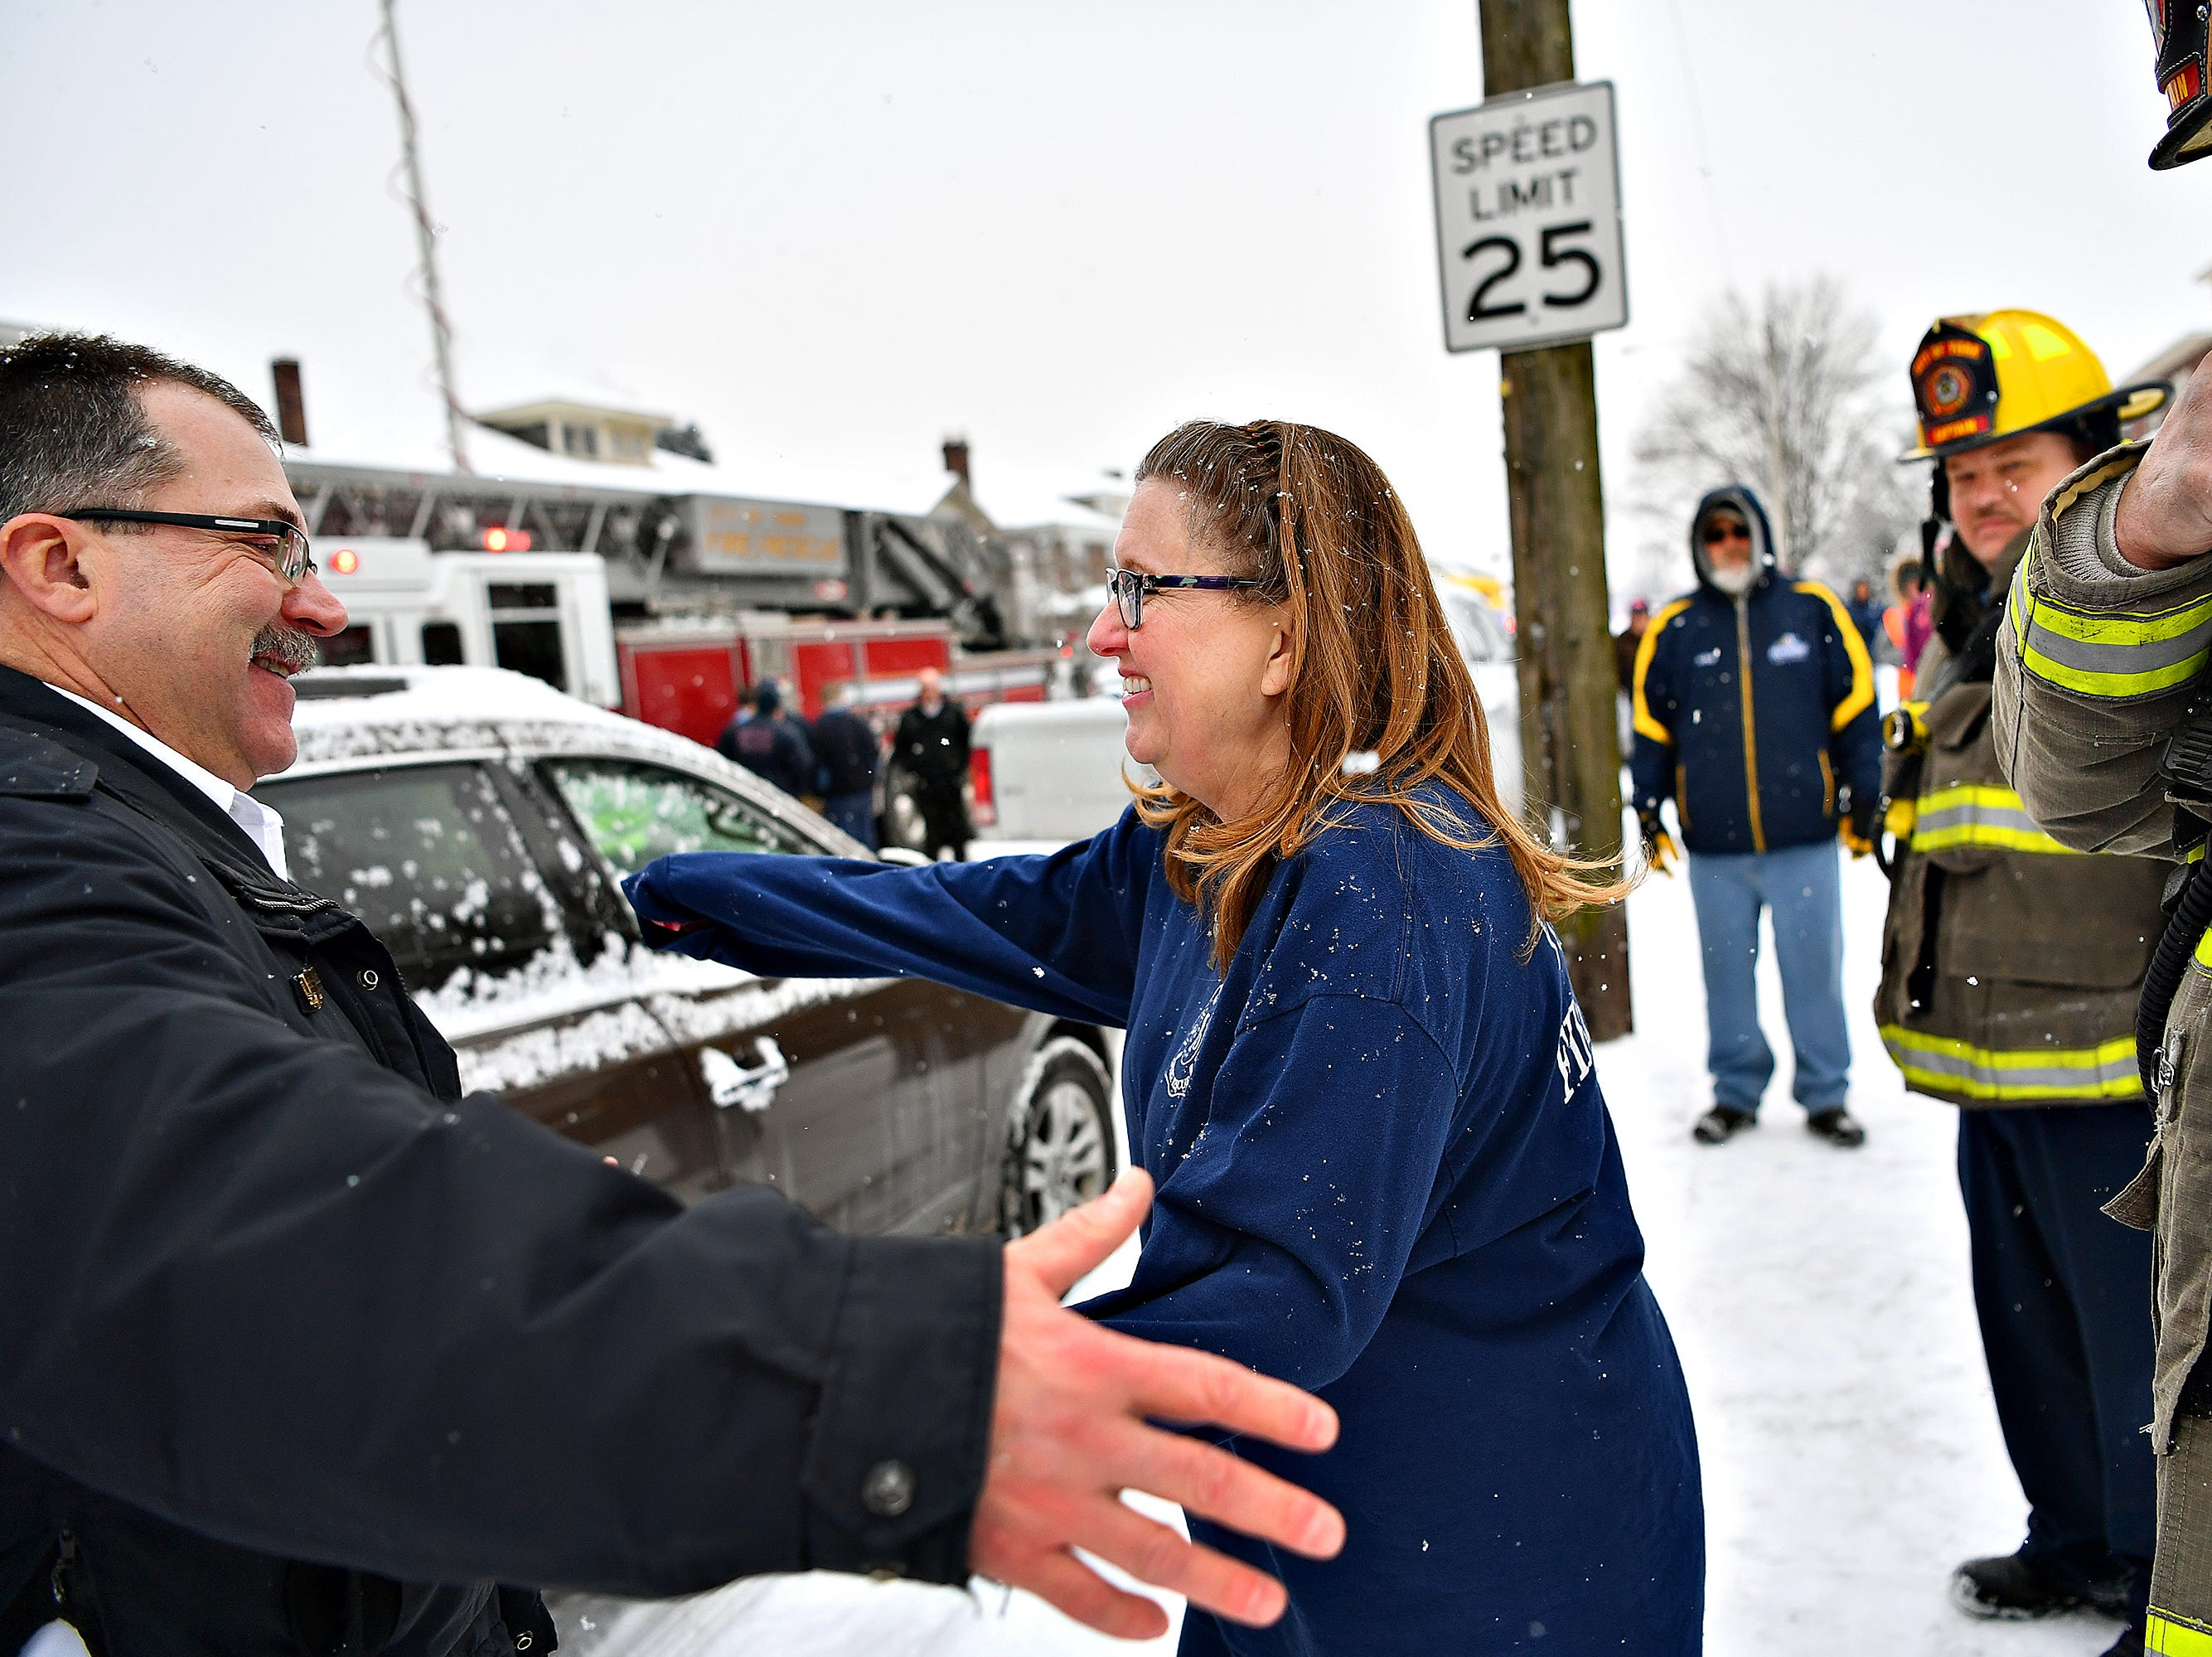 Newly retired York City Fire Chief David Michaels, left, is greeted by his wife, Barb Michaels, upon his arrival home following his final shift in York City, Friday, Feb. 1, 2019. Michaels has been chief since 2012, and has been with York City Department of Fire & Rescue for 28 years. Dawn J. Sagert photo